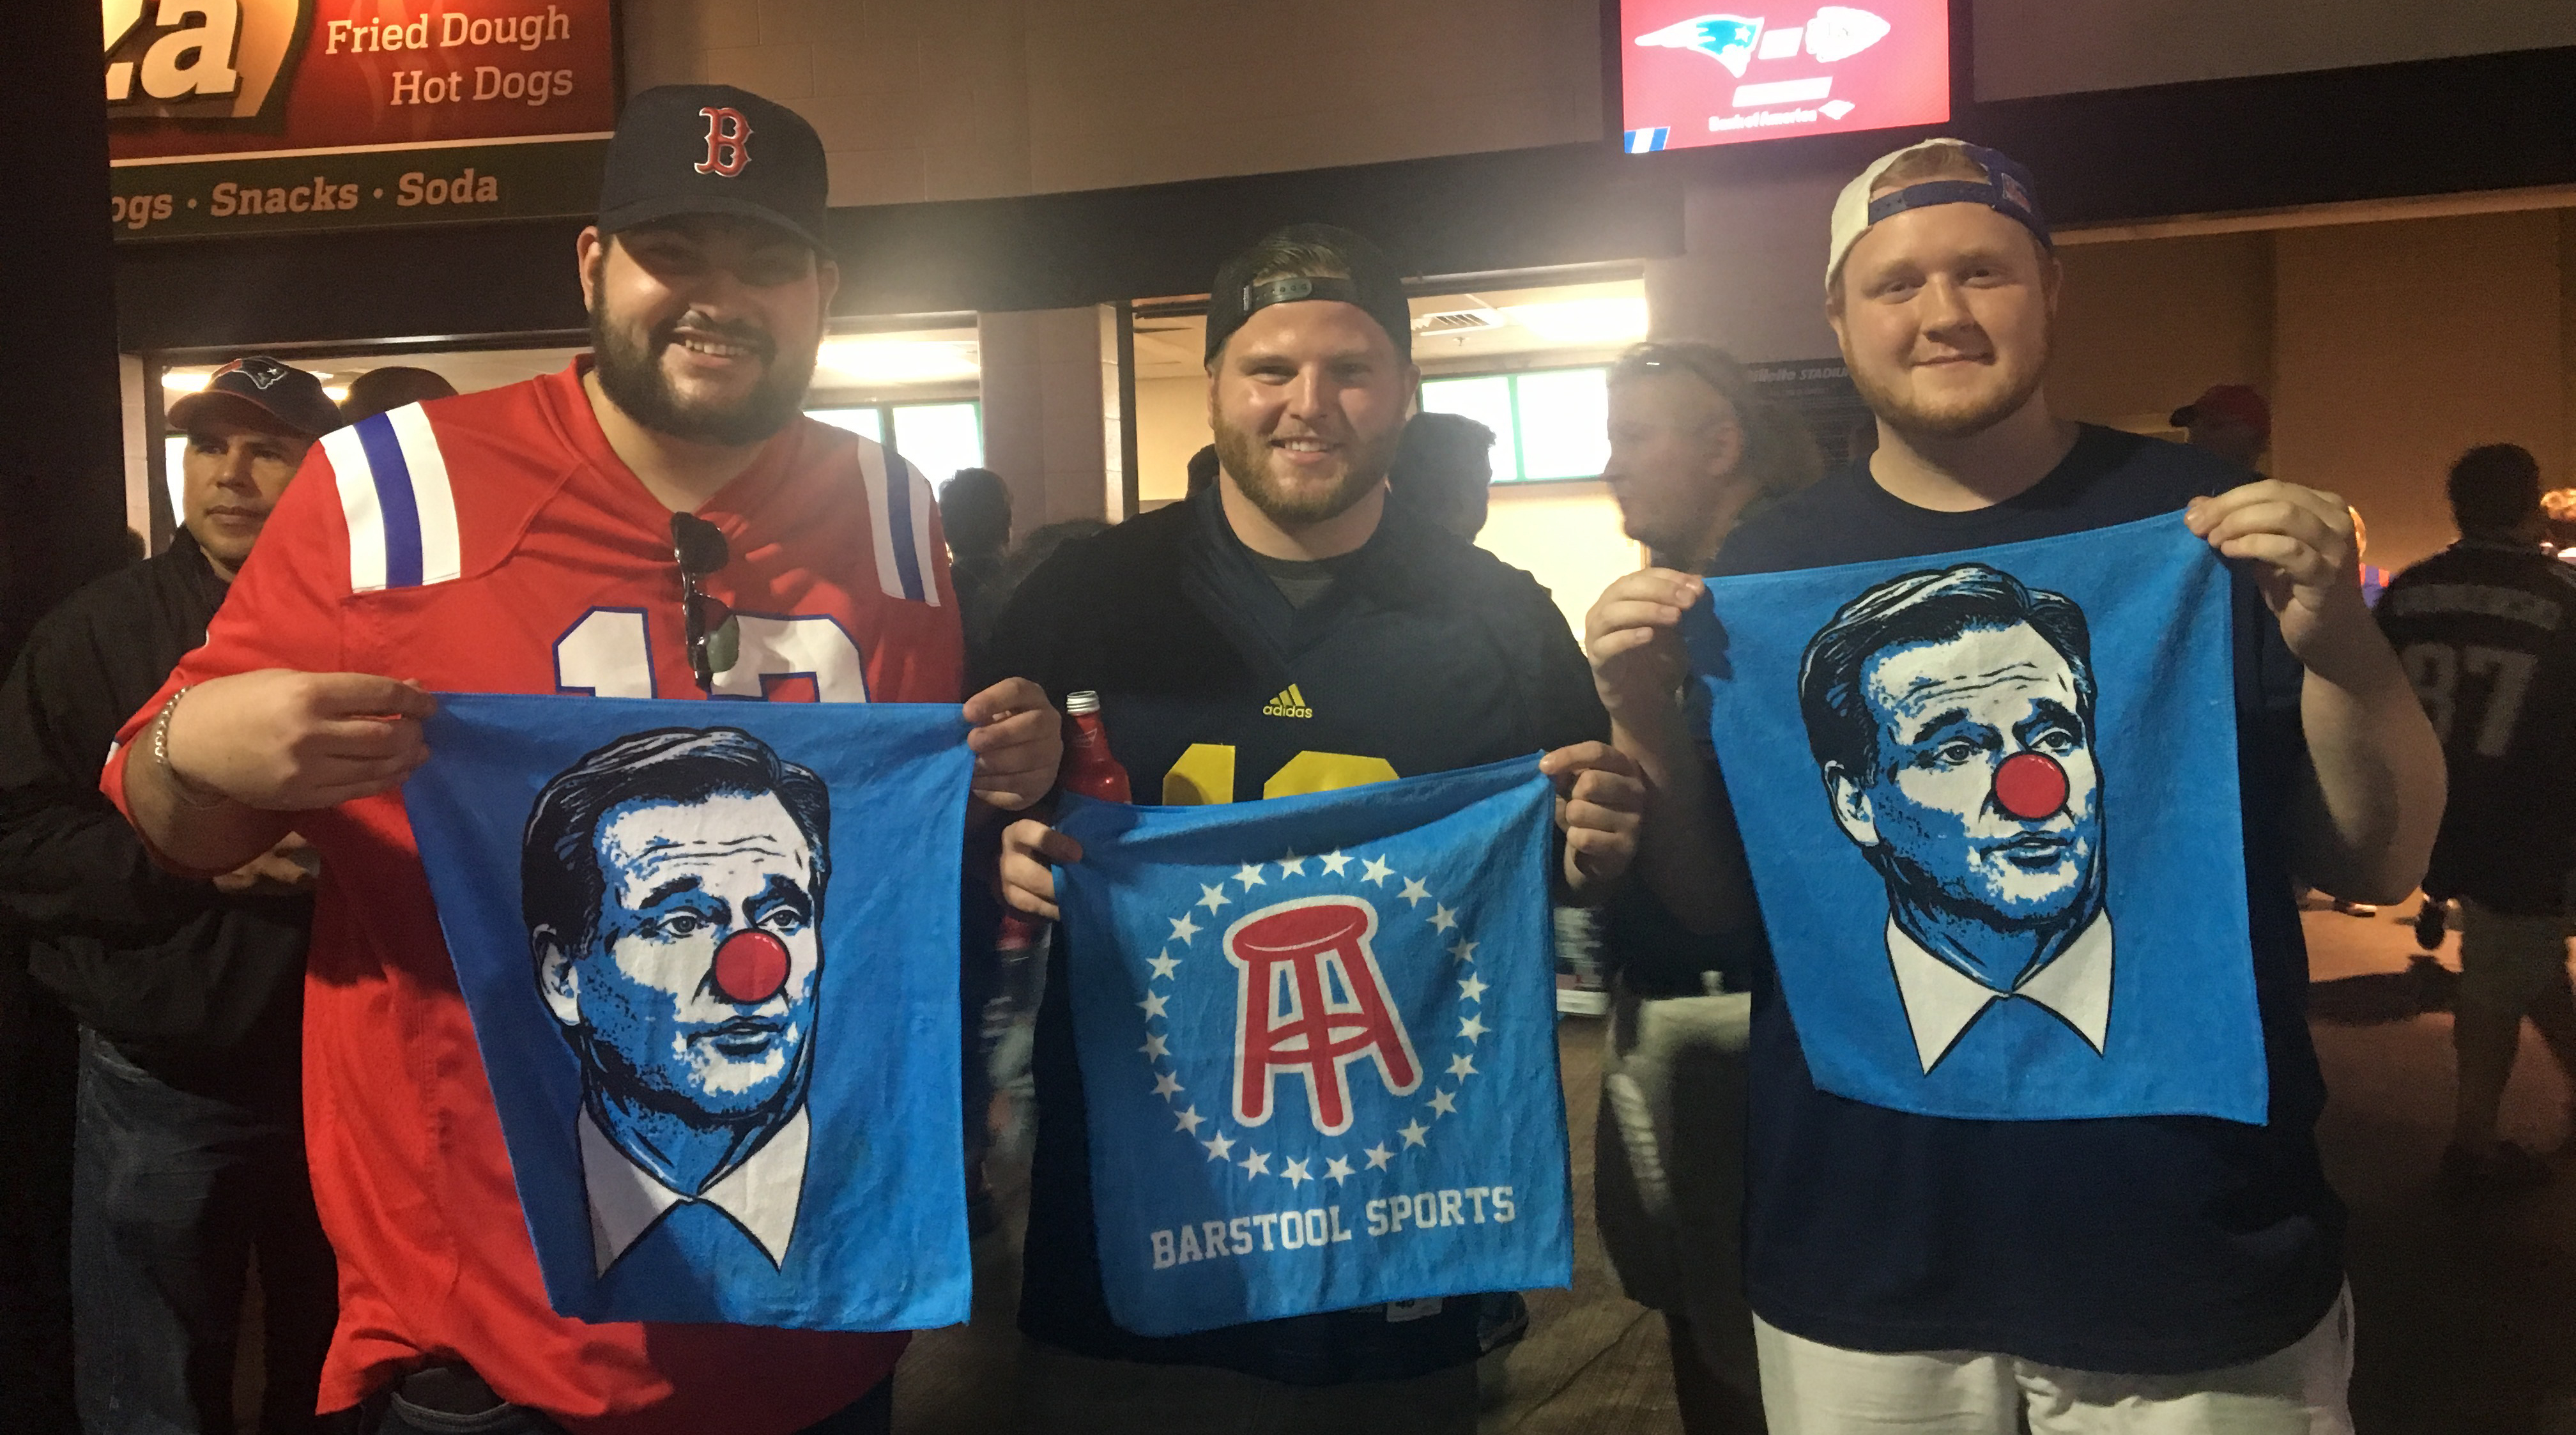 Joe Steele, Jack Henningson and Dillon Matthews show off their Clown Face towels.